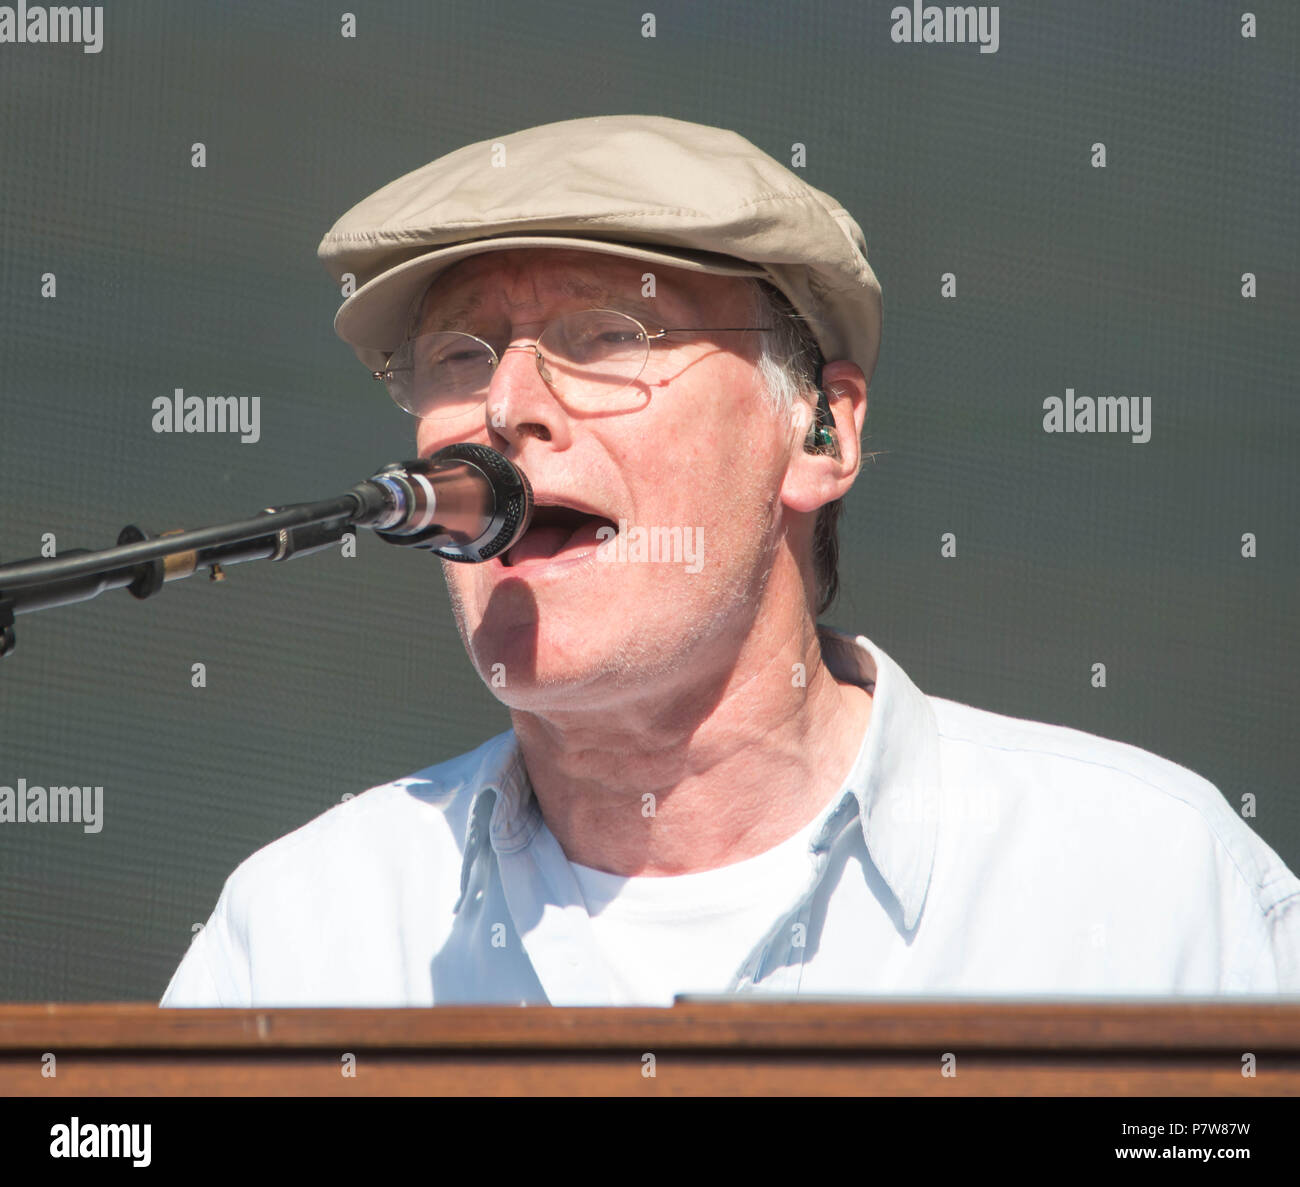 Hyde Park, London, United Kingdom. 8th July 2018. Steve Winwood performs on Day 3 of Barclaycard presents British Summer Time in Hyde Park. Michael Tubi/Alamy Live News - Stock Image